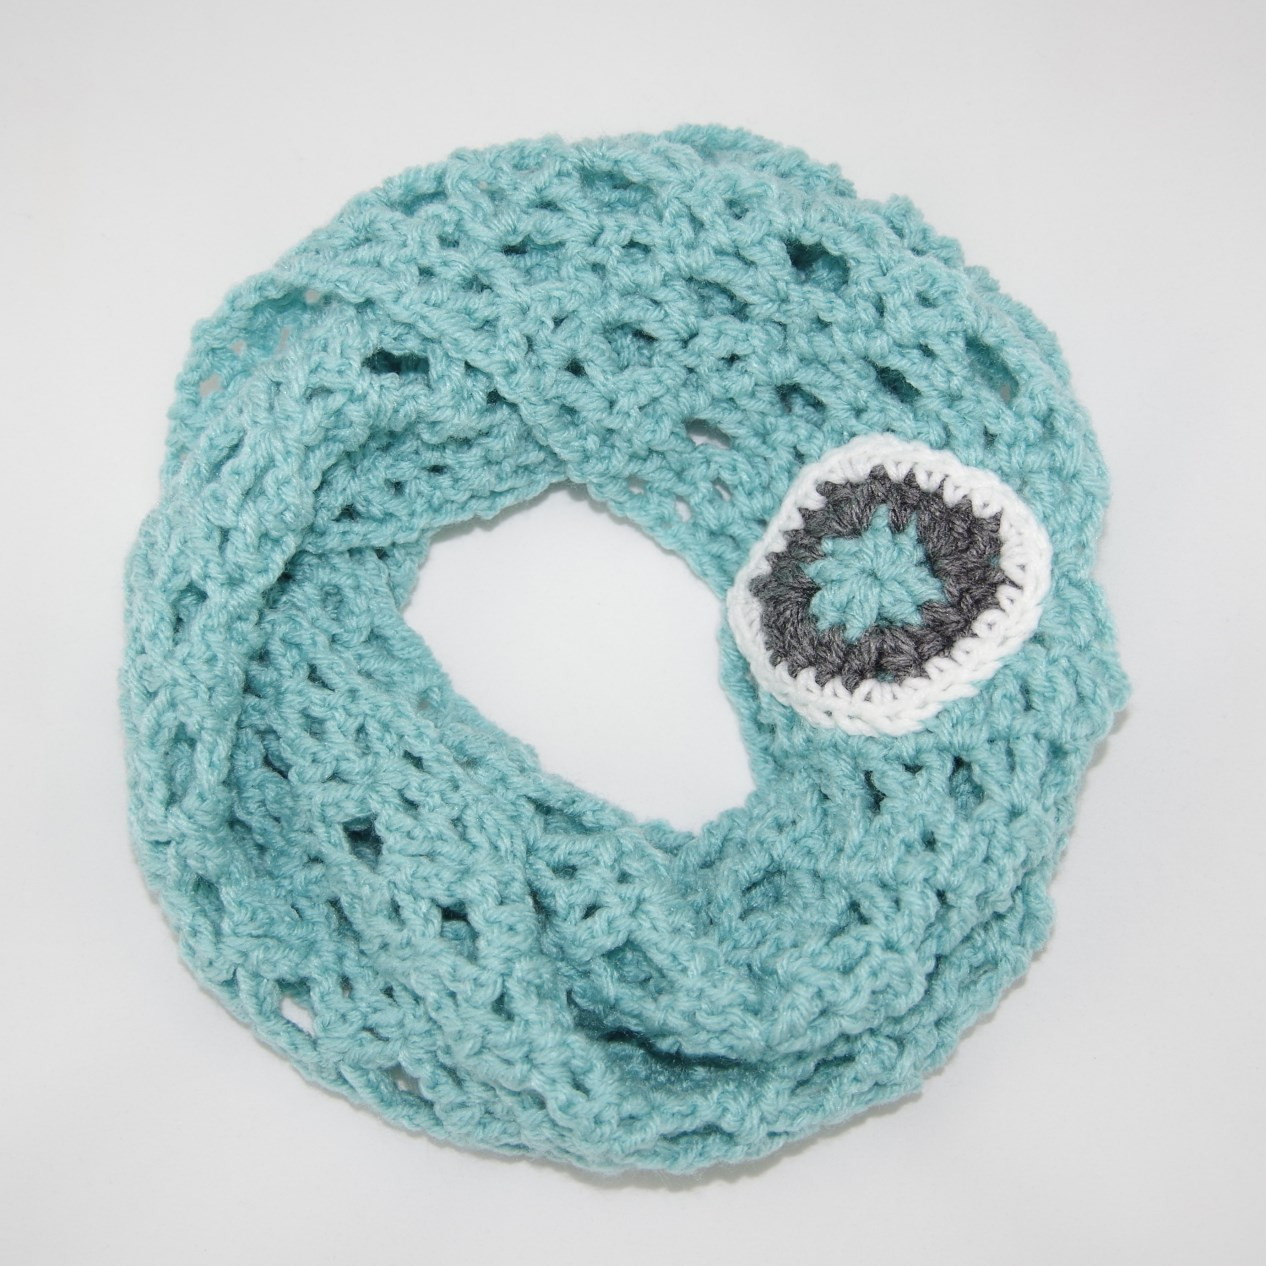 Crochet Lace Pattern Awesome Diamond Lace Infinity Scarf Crochet Pattern Of Gorgeous 50 Photos Crochet Lace Pattern